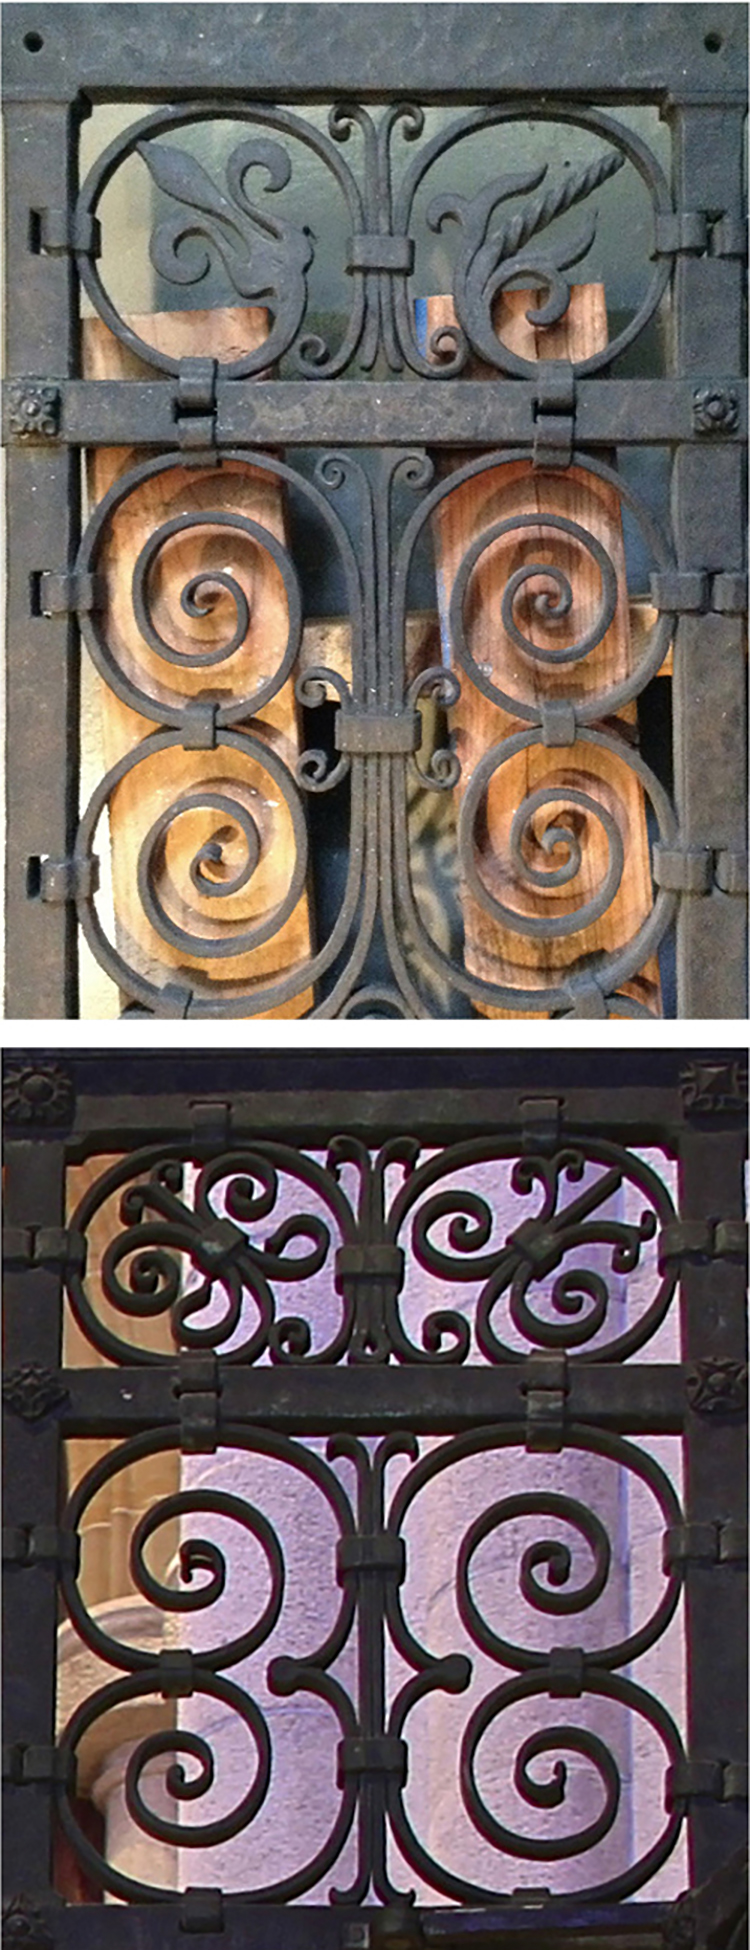 Figure 16: The top photograph shows a portion of the steel model of Bryn Athyn Cathedral's chapel grill, now in the collection of Glencairn Museum. Below is a similar section of the completed grill in Monel. Compare the top registers to see how the different qualities of the two metals cause the general design concepts to be rendered.